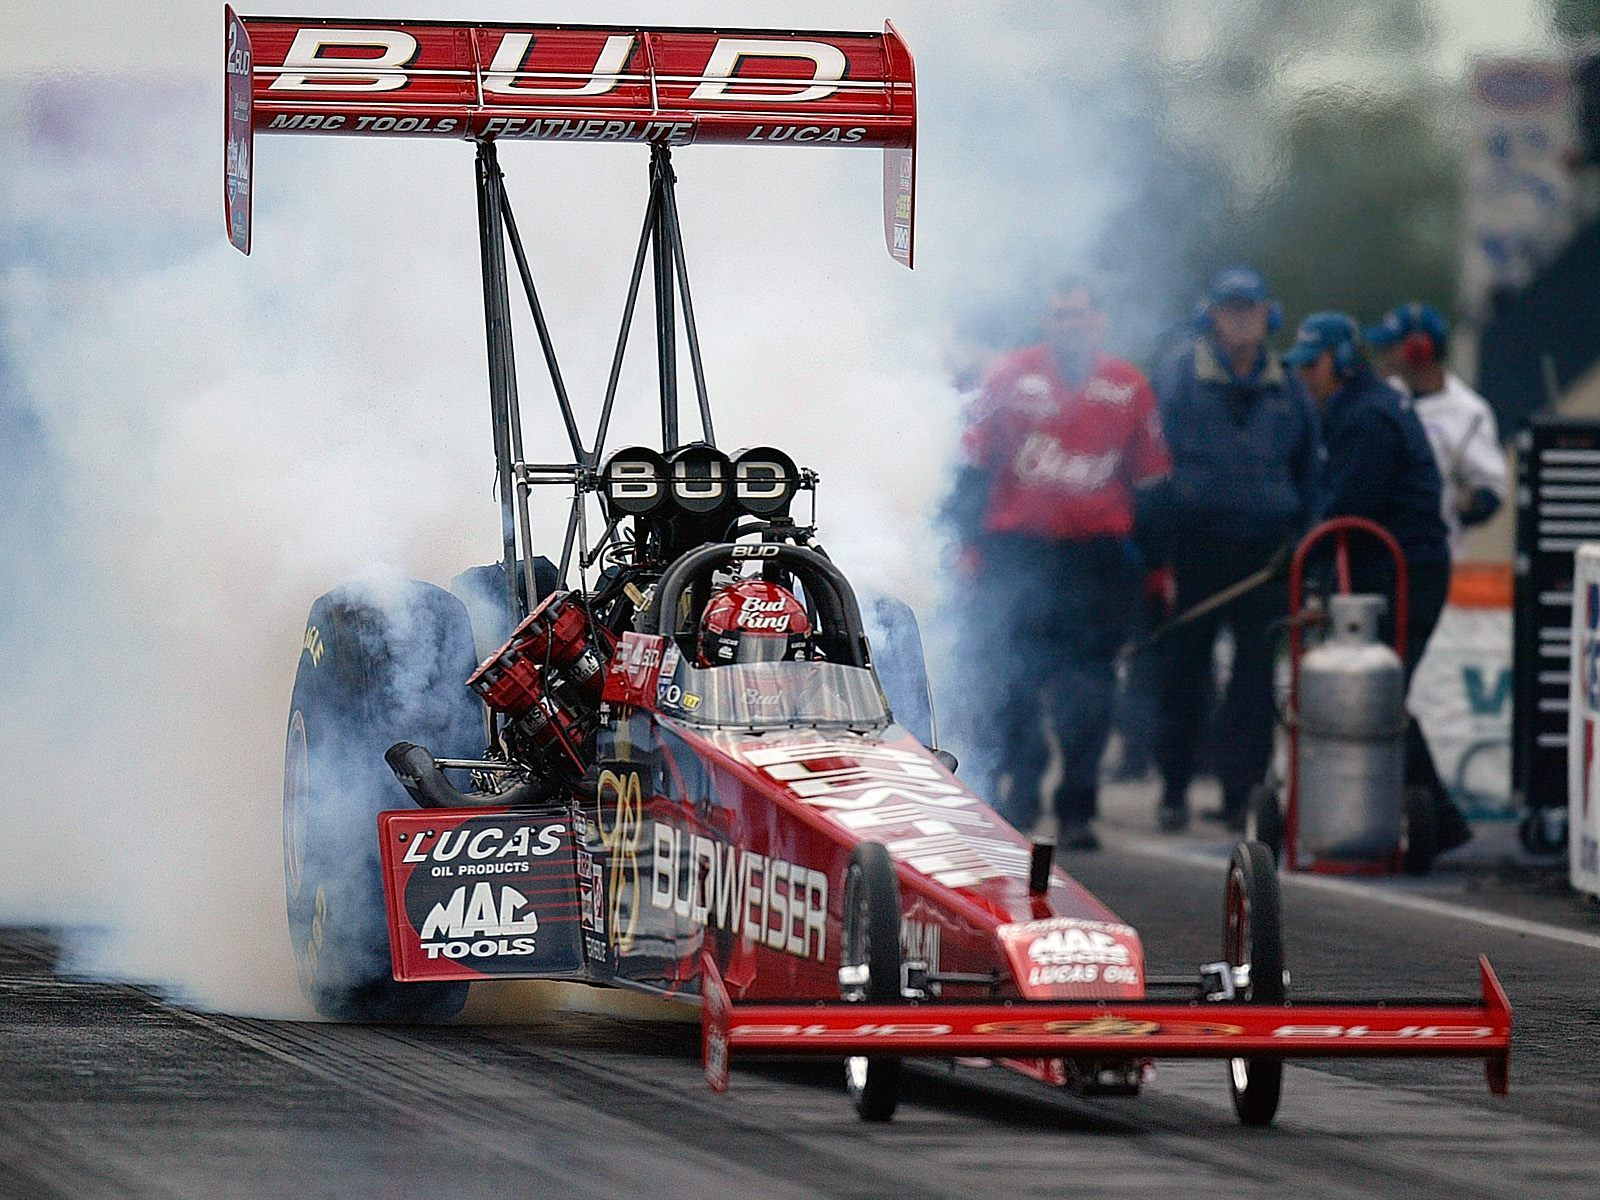 I used to race a rear engine dragster. I stay away from the race ...